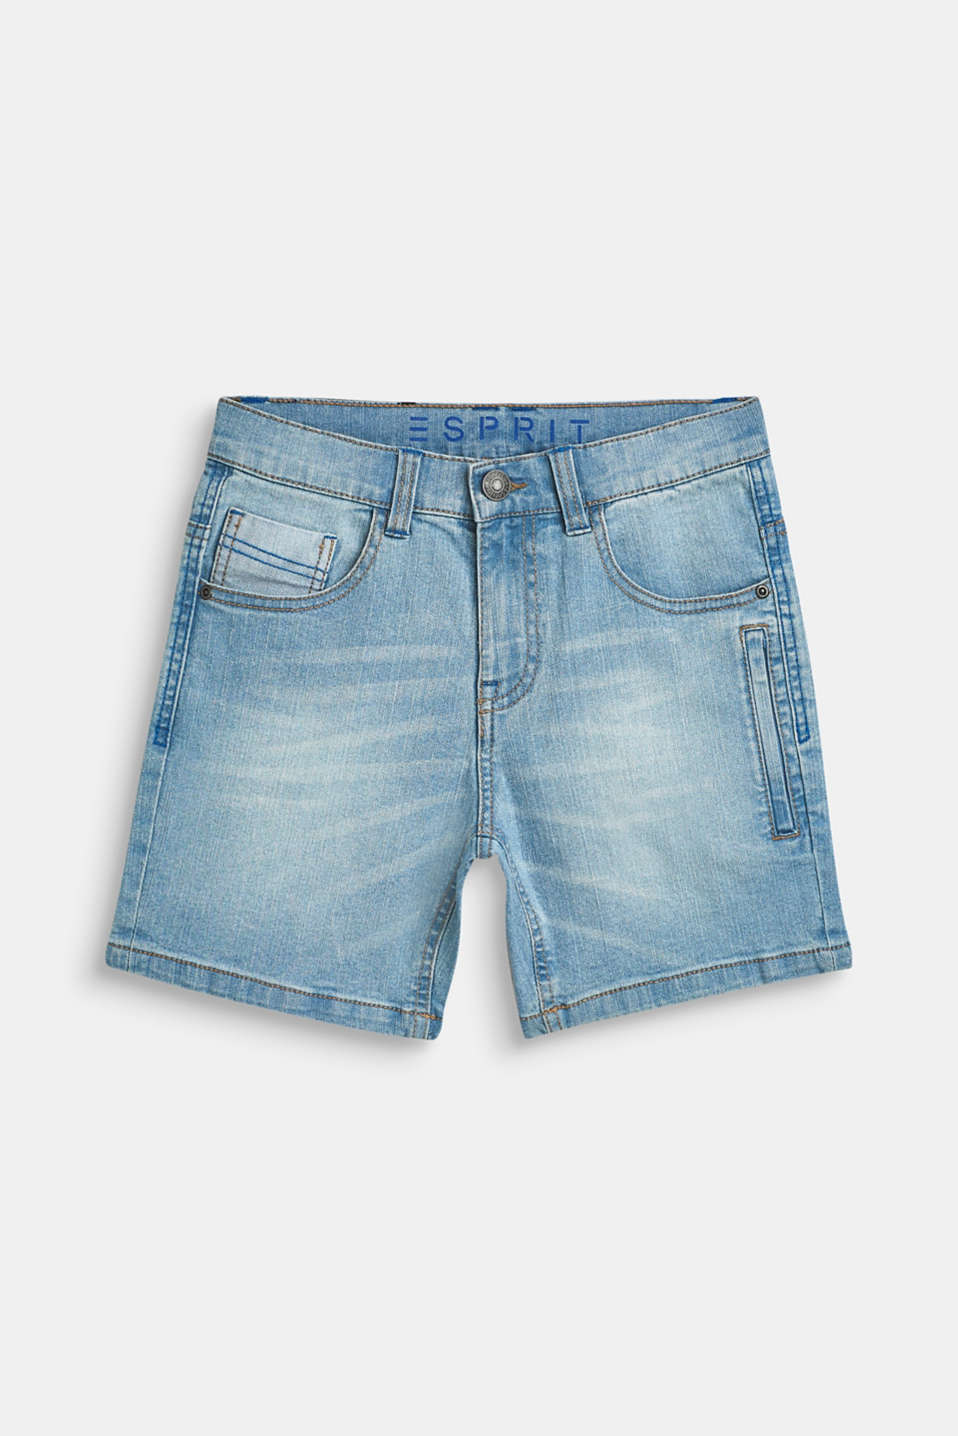 Esprit - Superstretchy denim short met een used wash